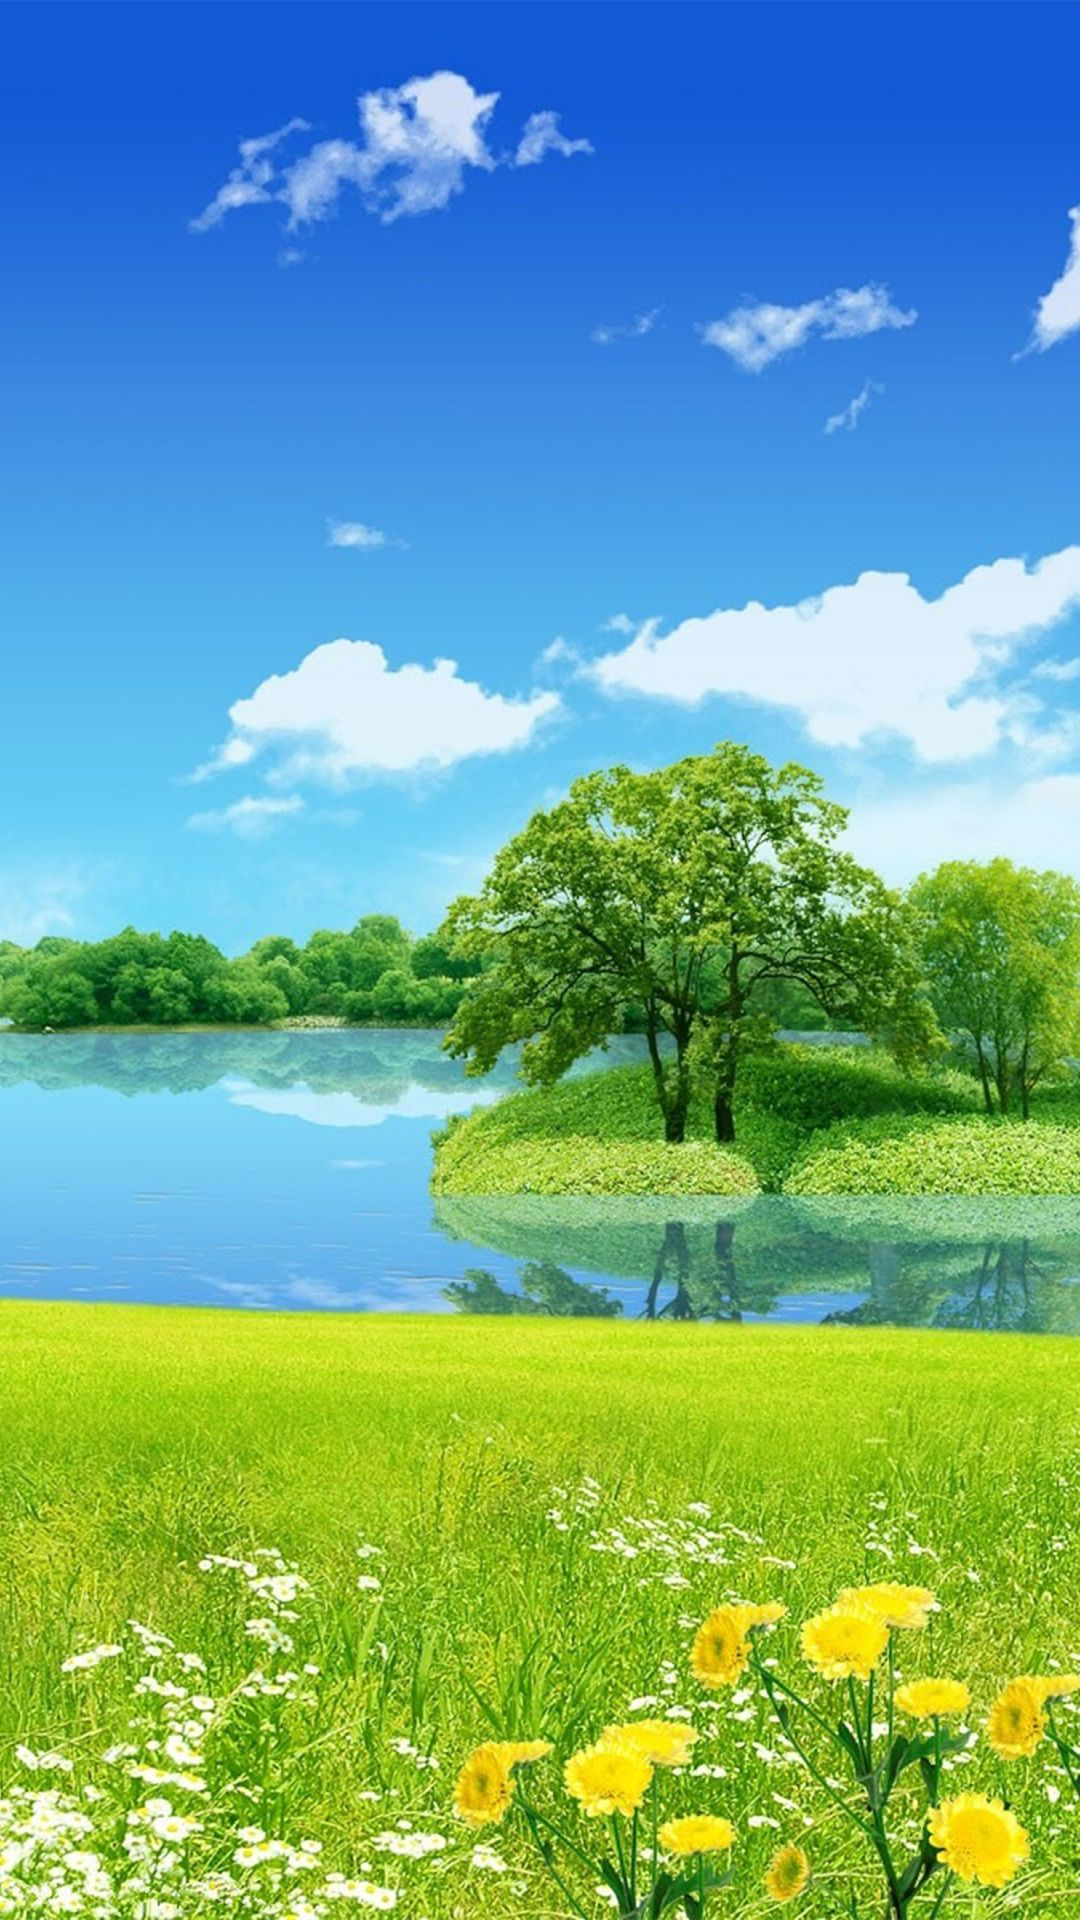 Hd wallpaper nature for mobile - Download Natural Scenery Phone Wallpapers Free Mobile Hd